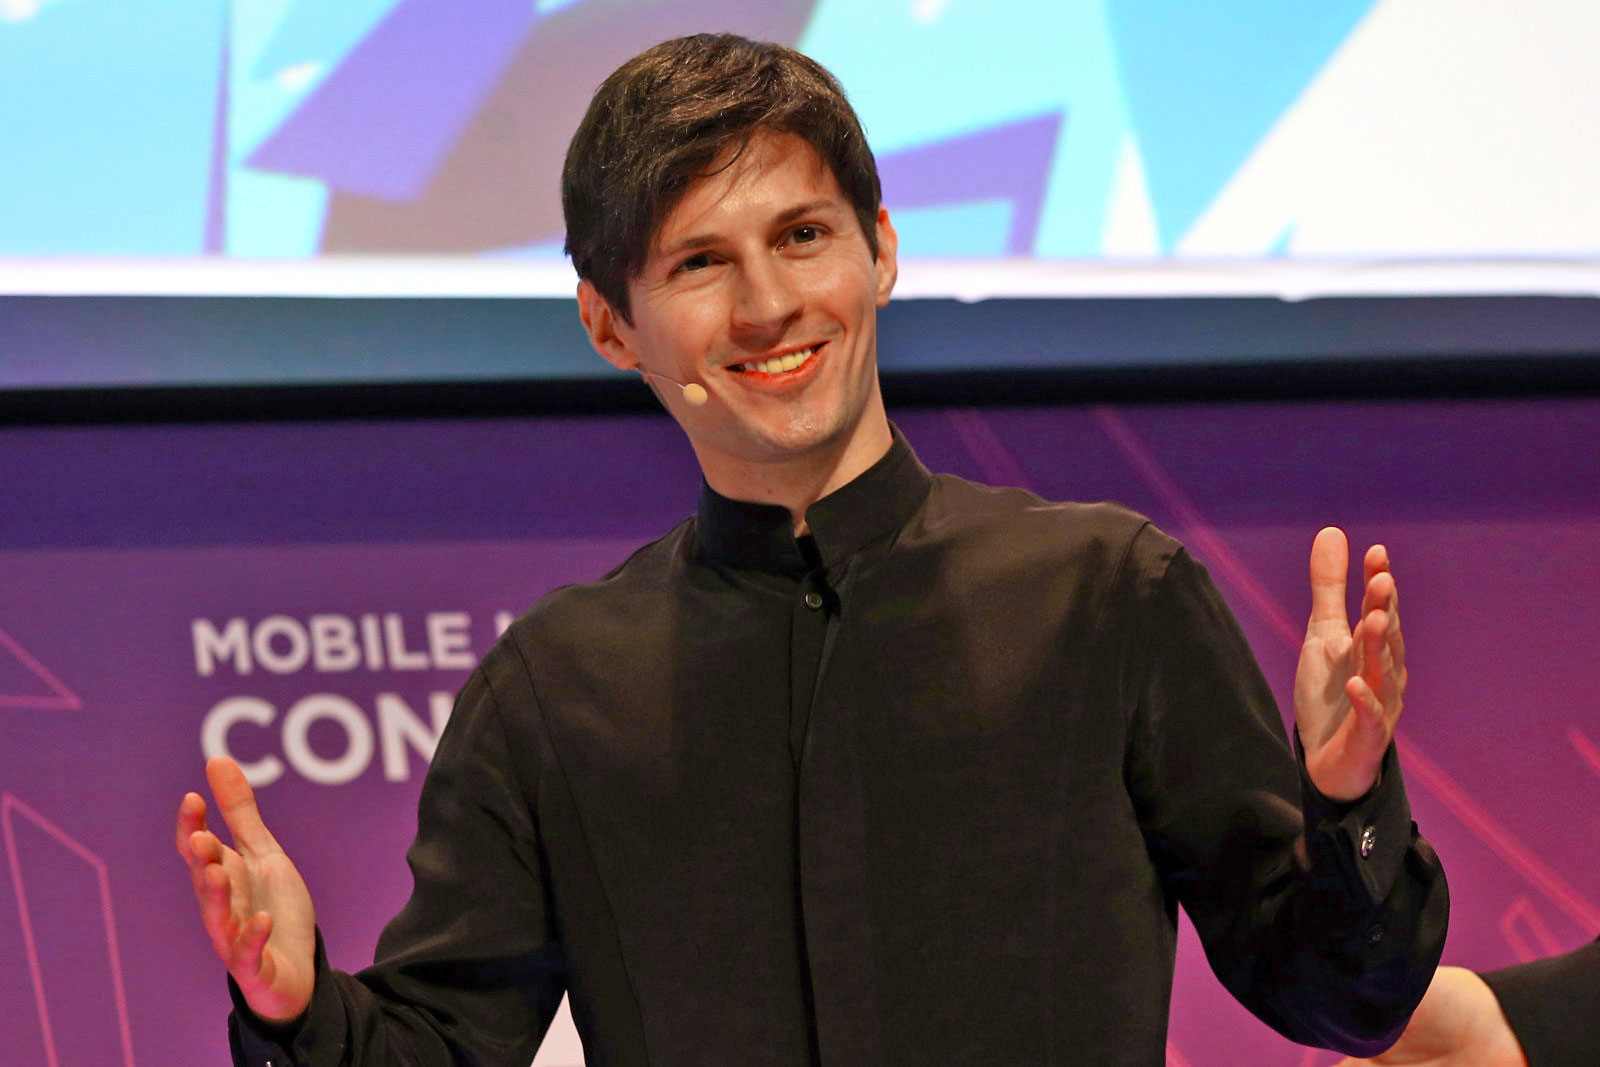 telegram-founder-and-ceo-pavel-durov-del